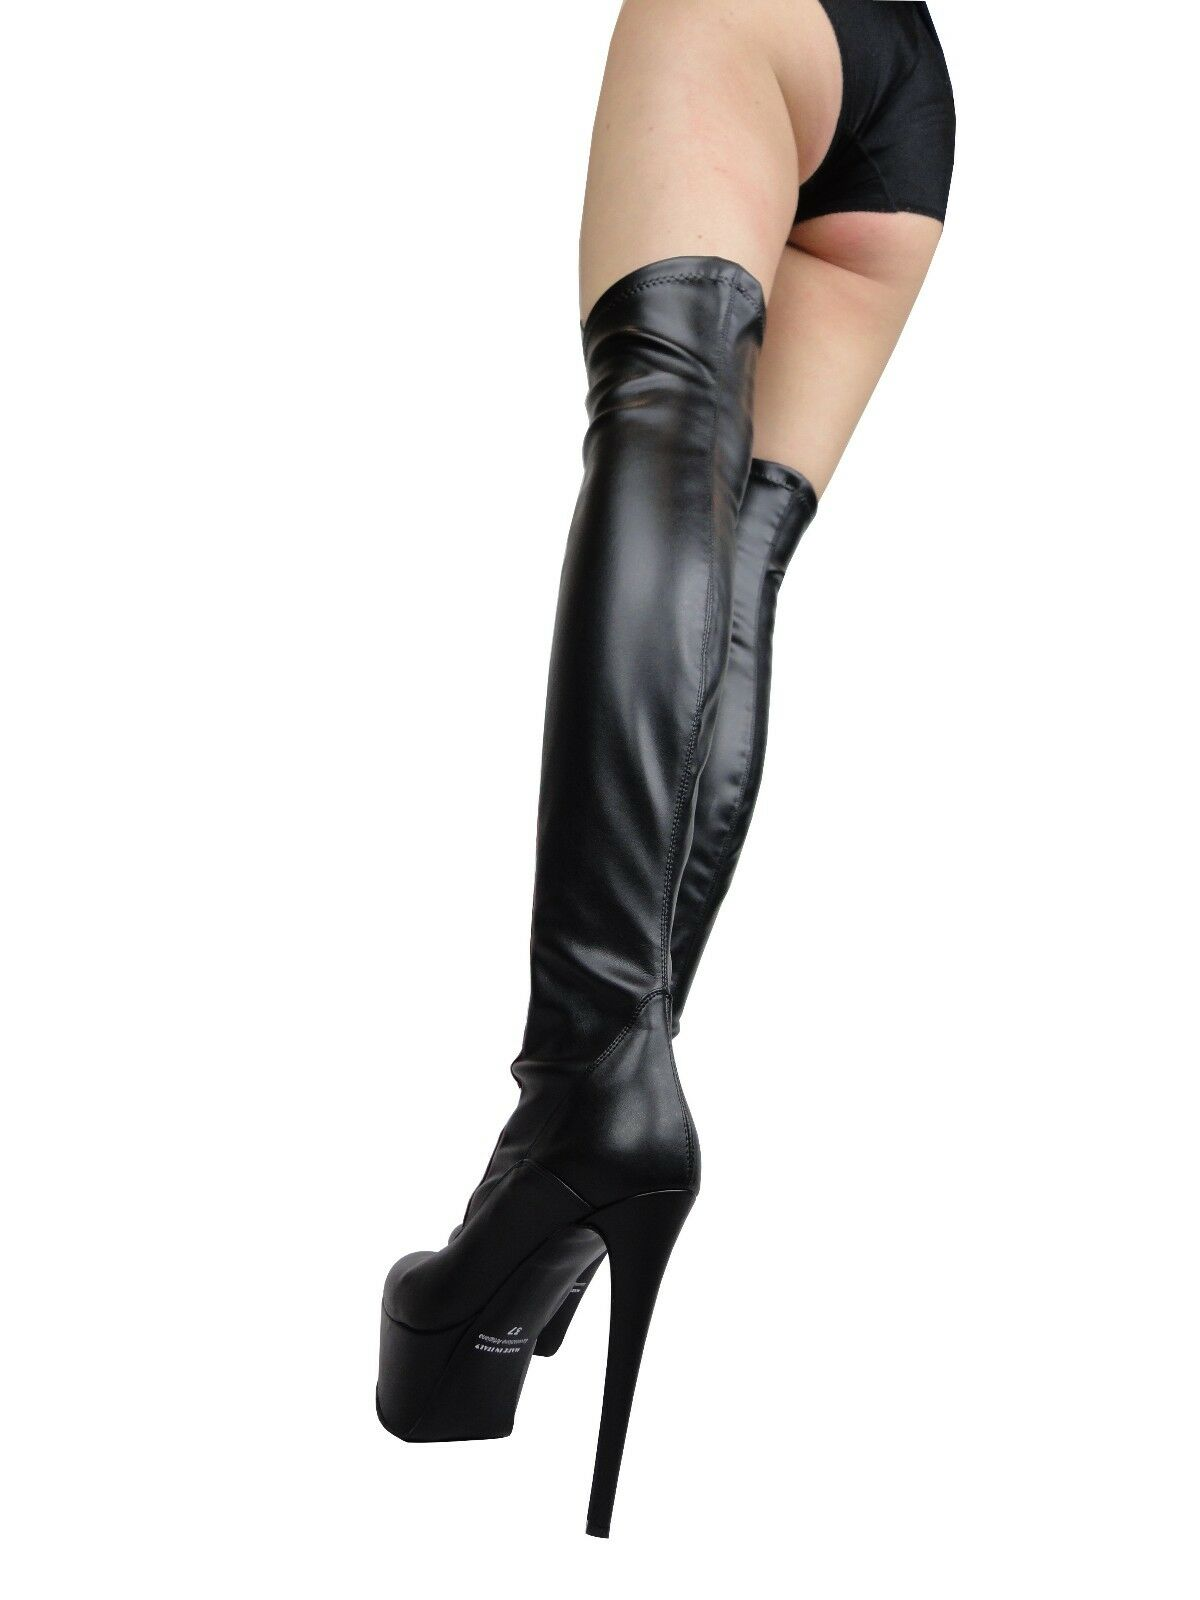 GIOHEL STIEFEL PLATFORM OVERKNEE BOOTS STIEFEL GIOHEL BOTTES STRETCH CORSET BLACK RED NOIR 38 52f8fe